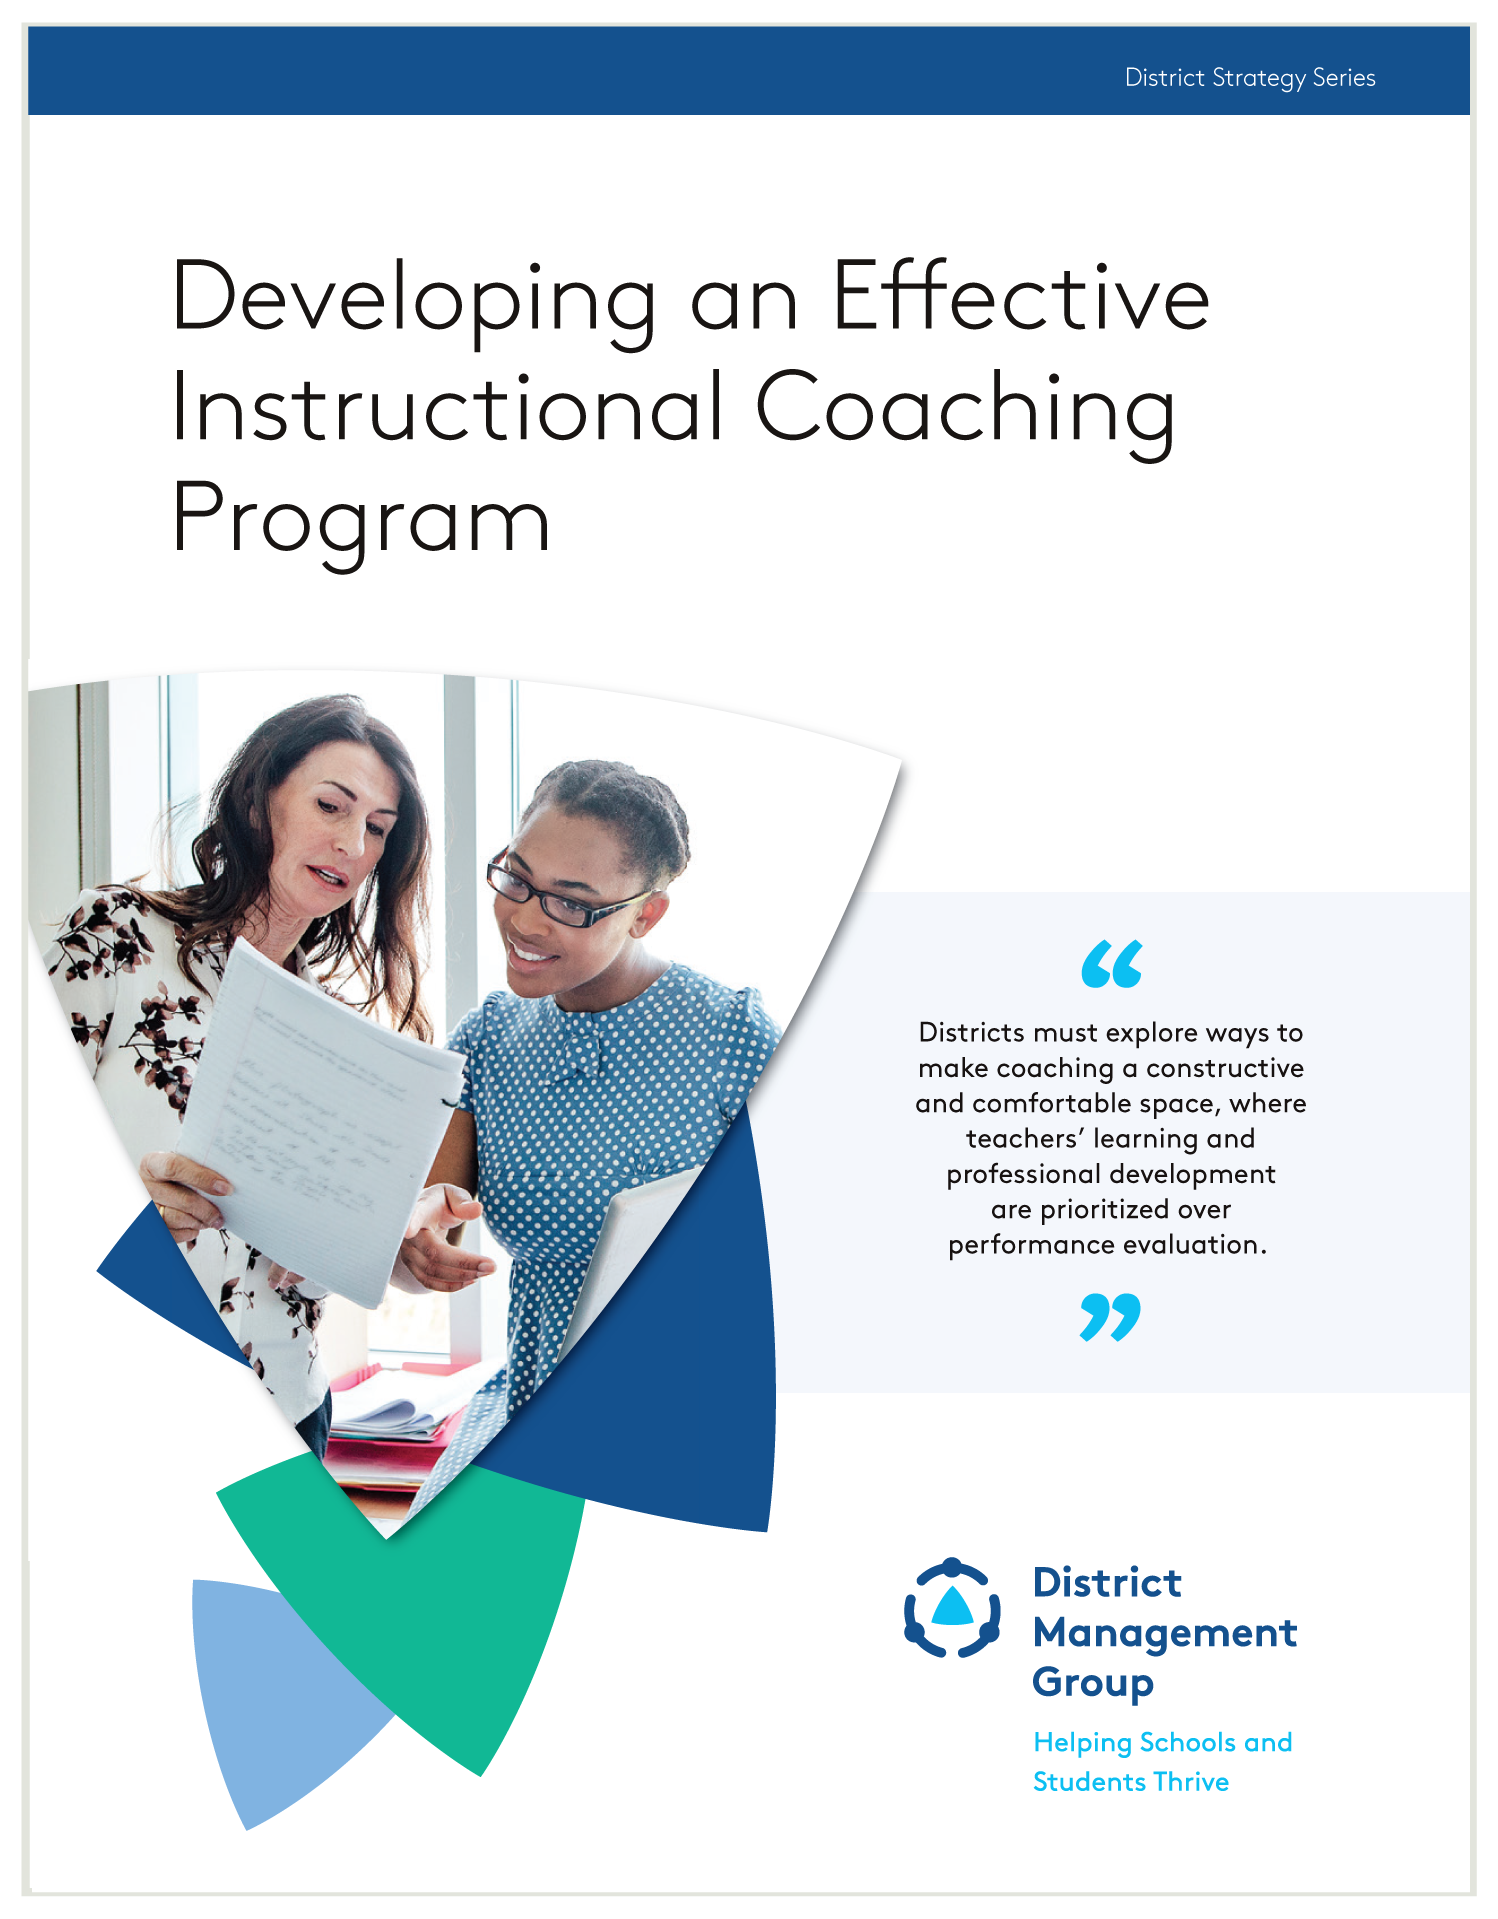 instructional-coaching-district-strategy-series-01